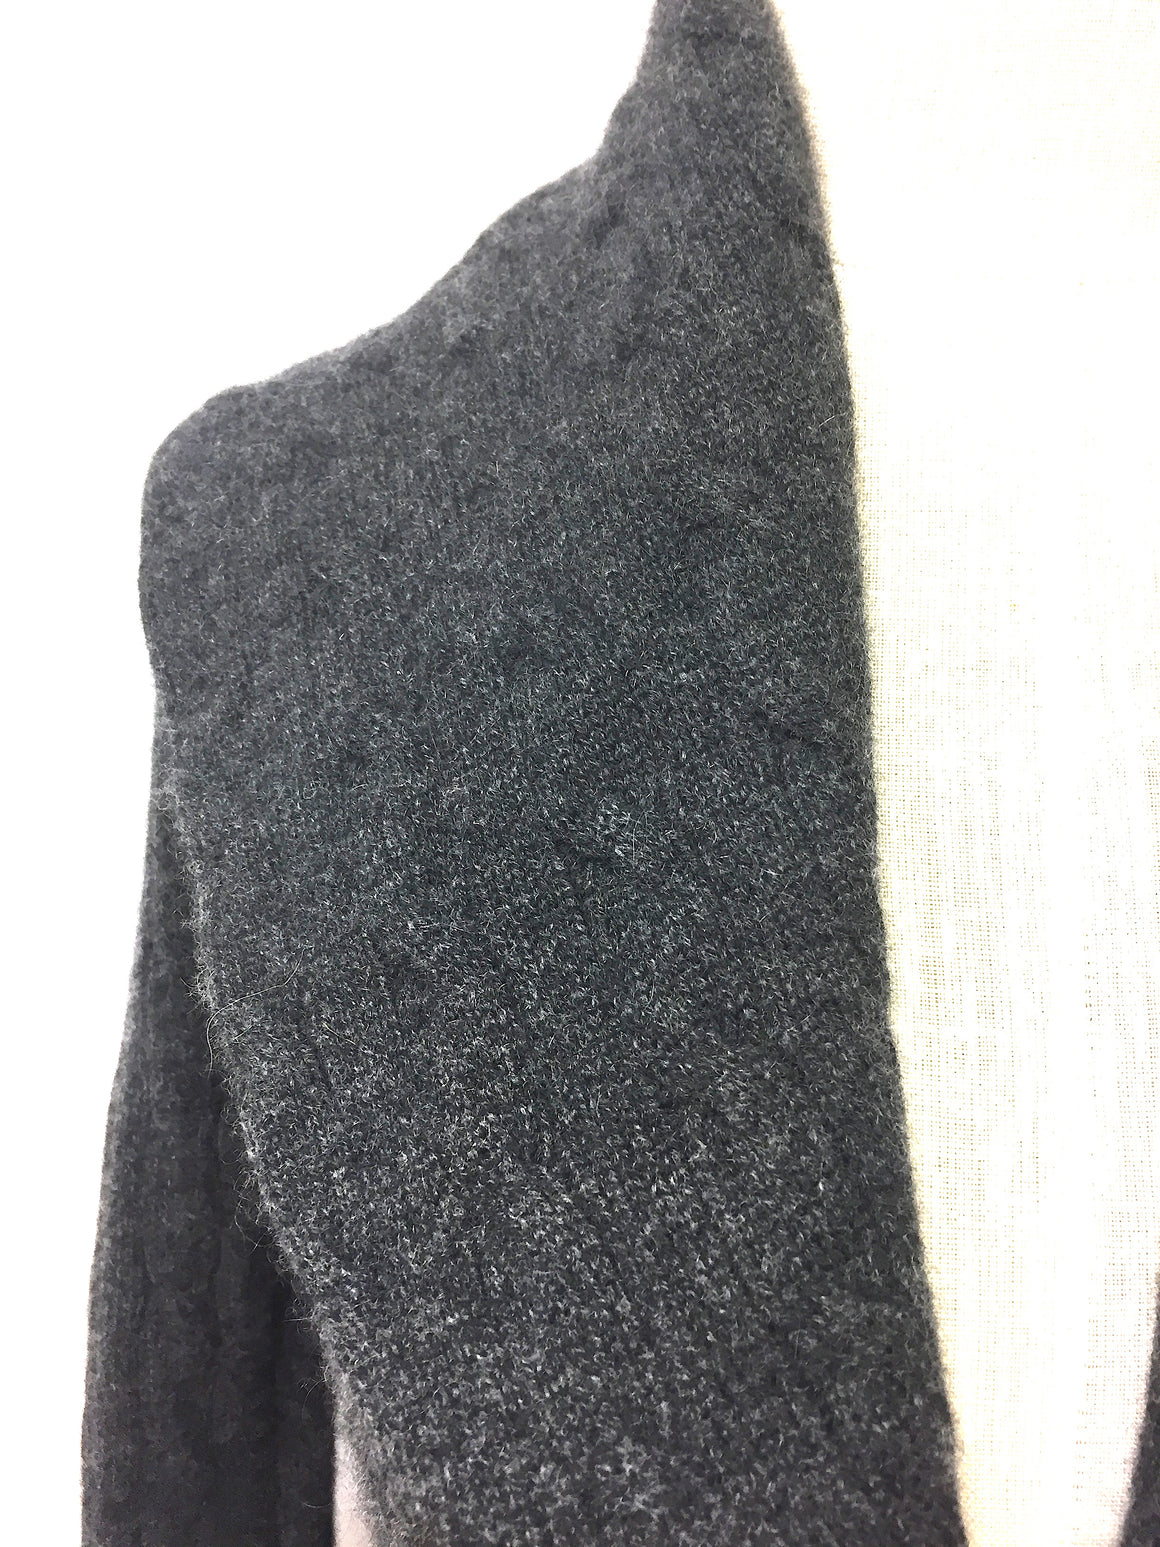 RALPH LAUREN  Graphite-Gray Cable-Knit Cashmere Shawl Collared Cardigan Sweater Size: Small